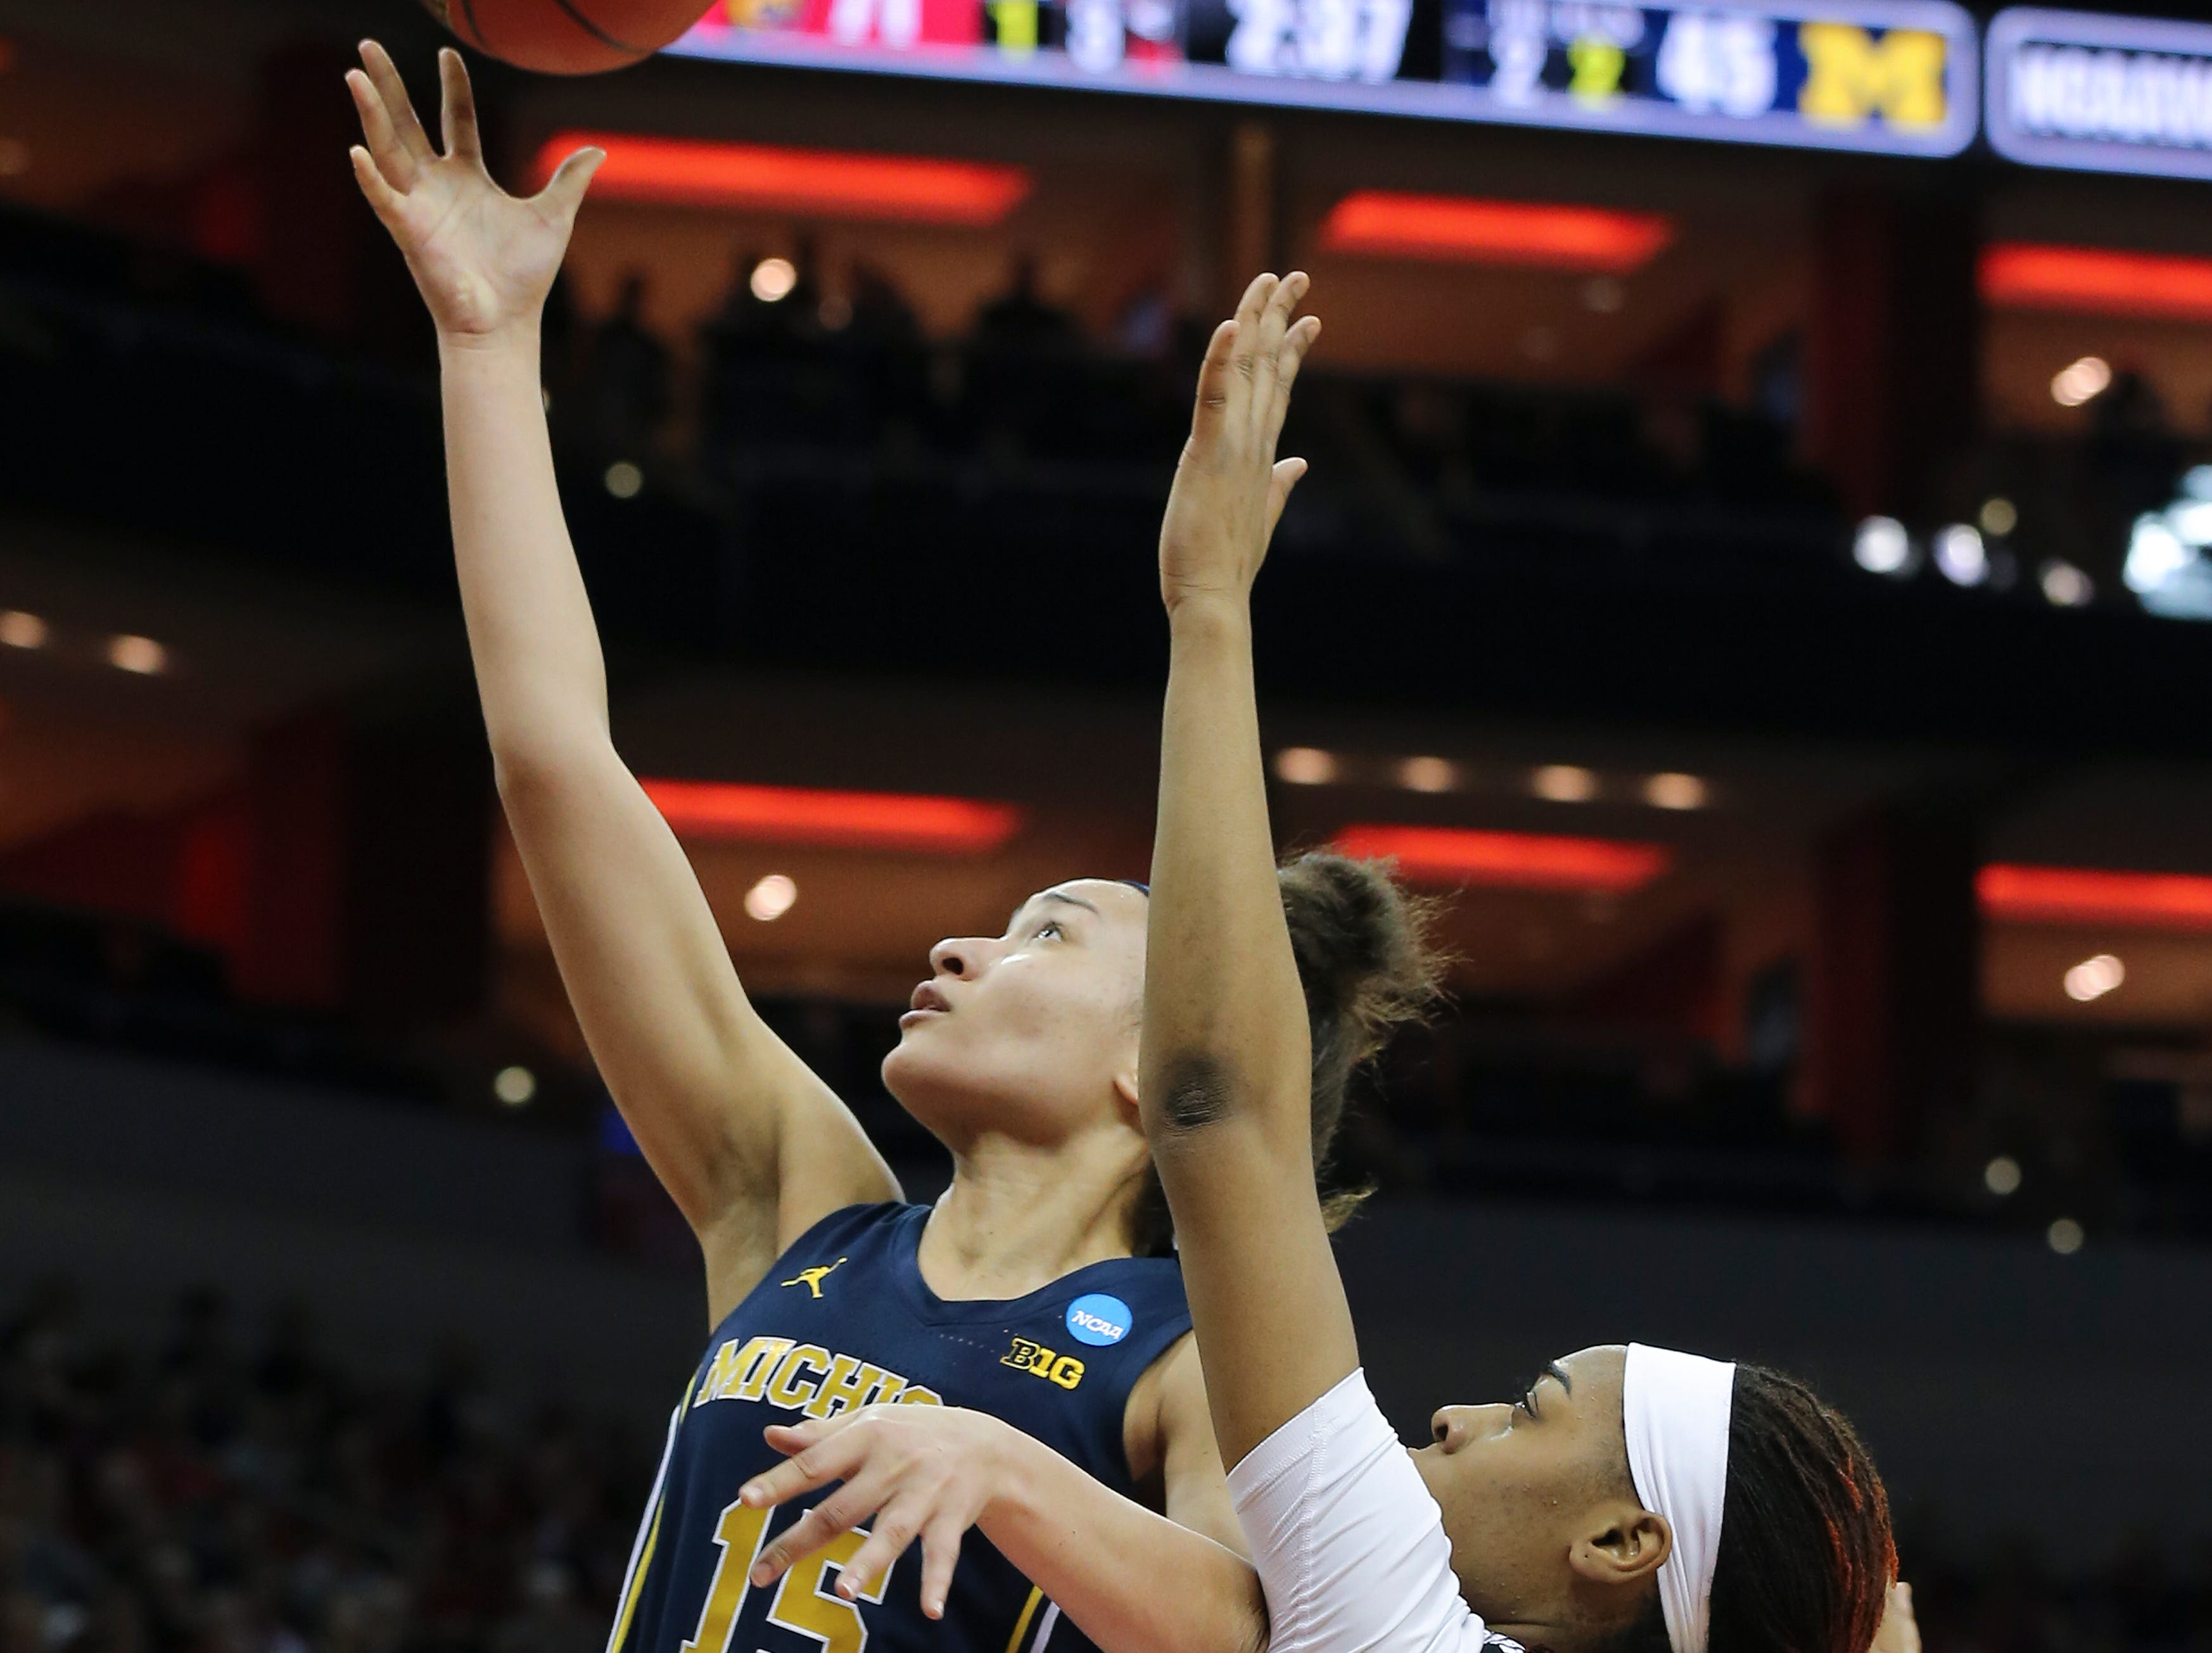 Michigan's Hailey Brown (15) shot against U of L's Bionca Dunham (33) during the second round of their NCAA Tournament game at the Yum Center.Mar. 24, 2019